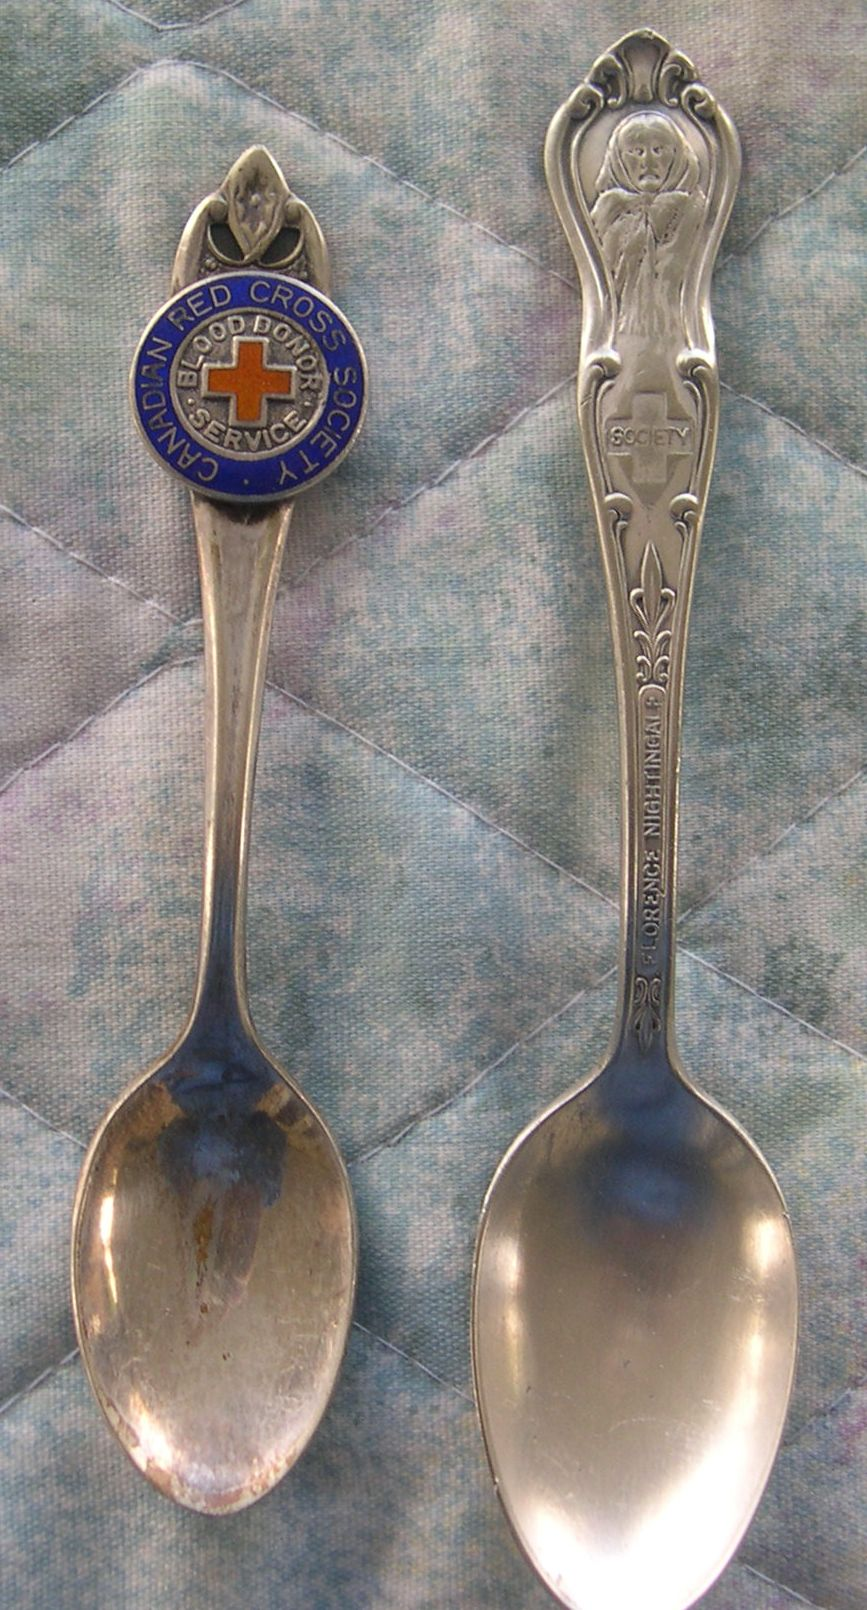 red cross spoons